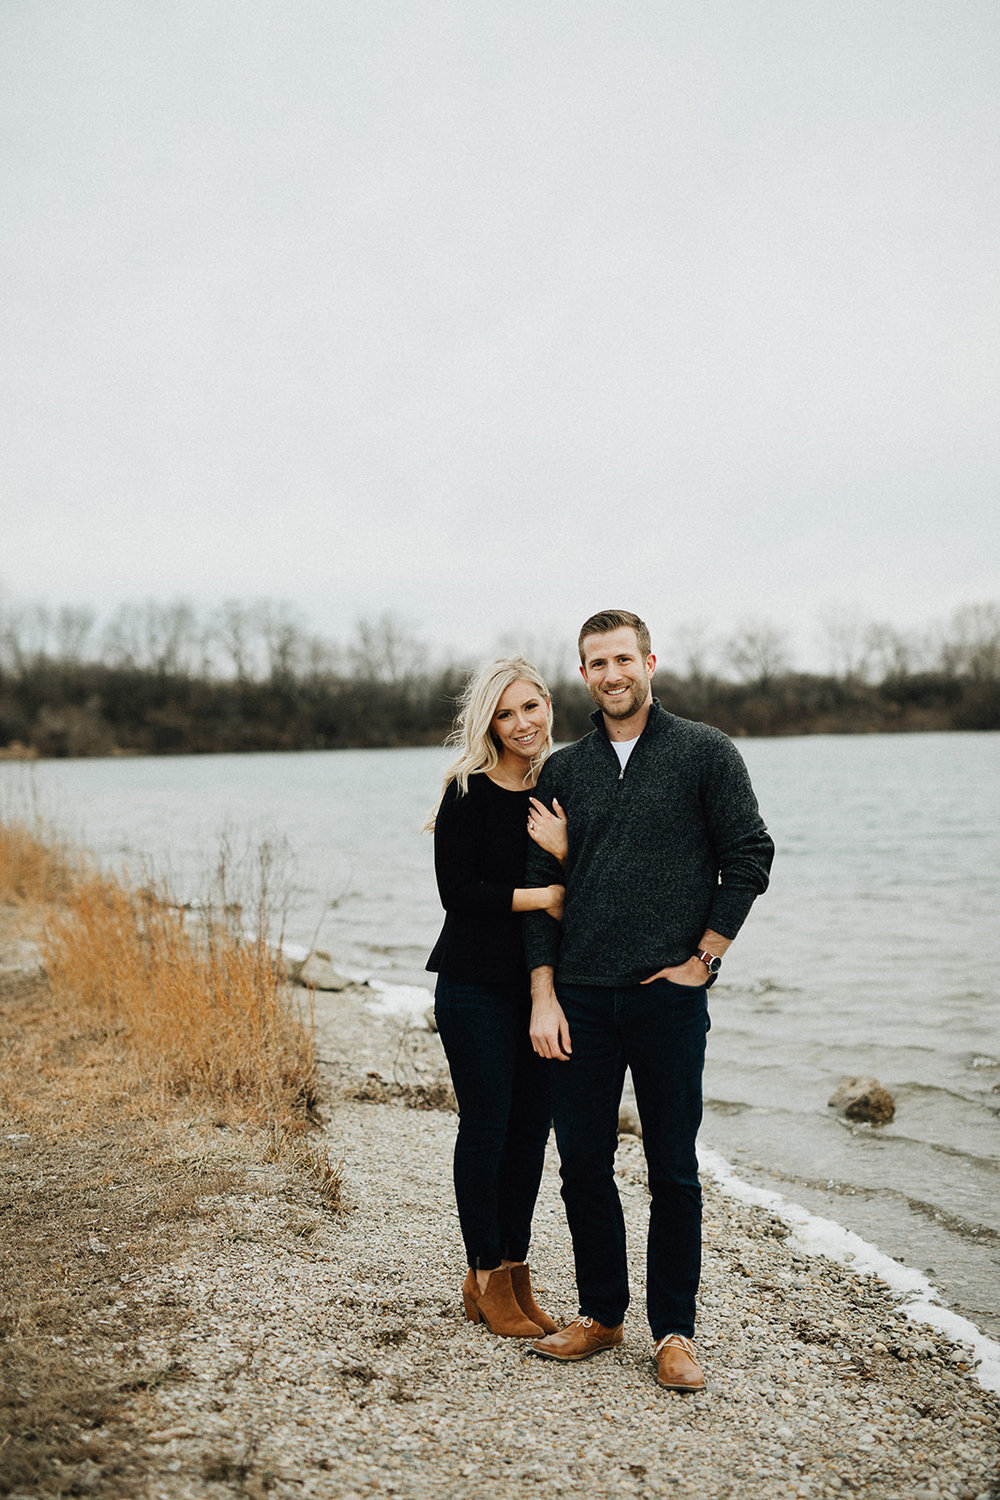 Natural Light Lakeside Engagement Photos with Warm Sunlight